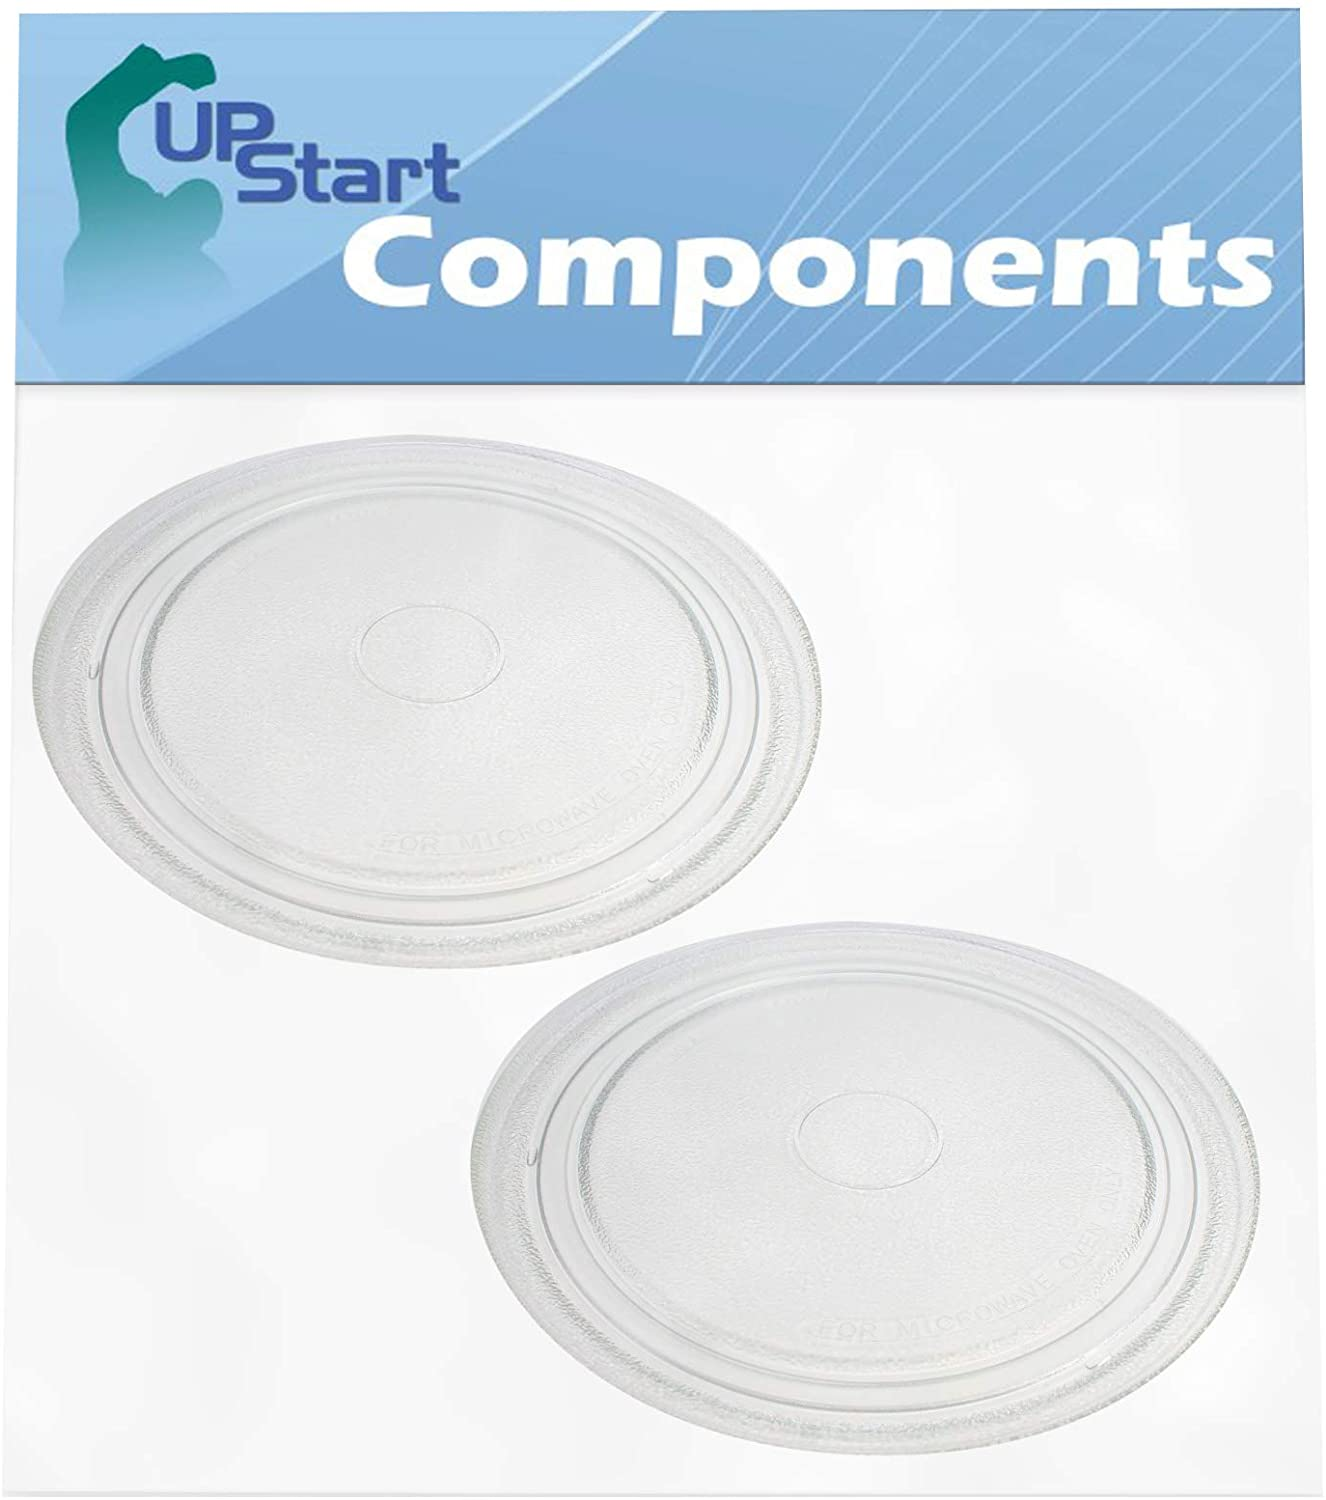 2-Pack NTNT-A034WRE Microwave Glass Turntable Plate Replacement for Sharp NTNT-A034WRF0 - Compatible with A034 10 3/4 Inch Glass Tray